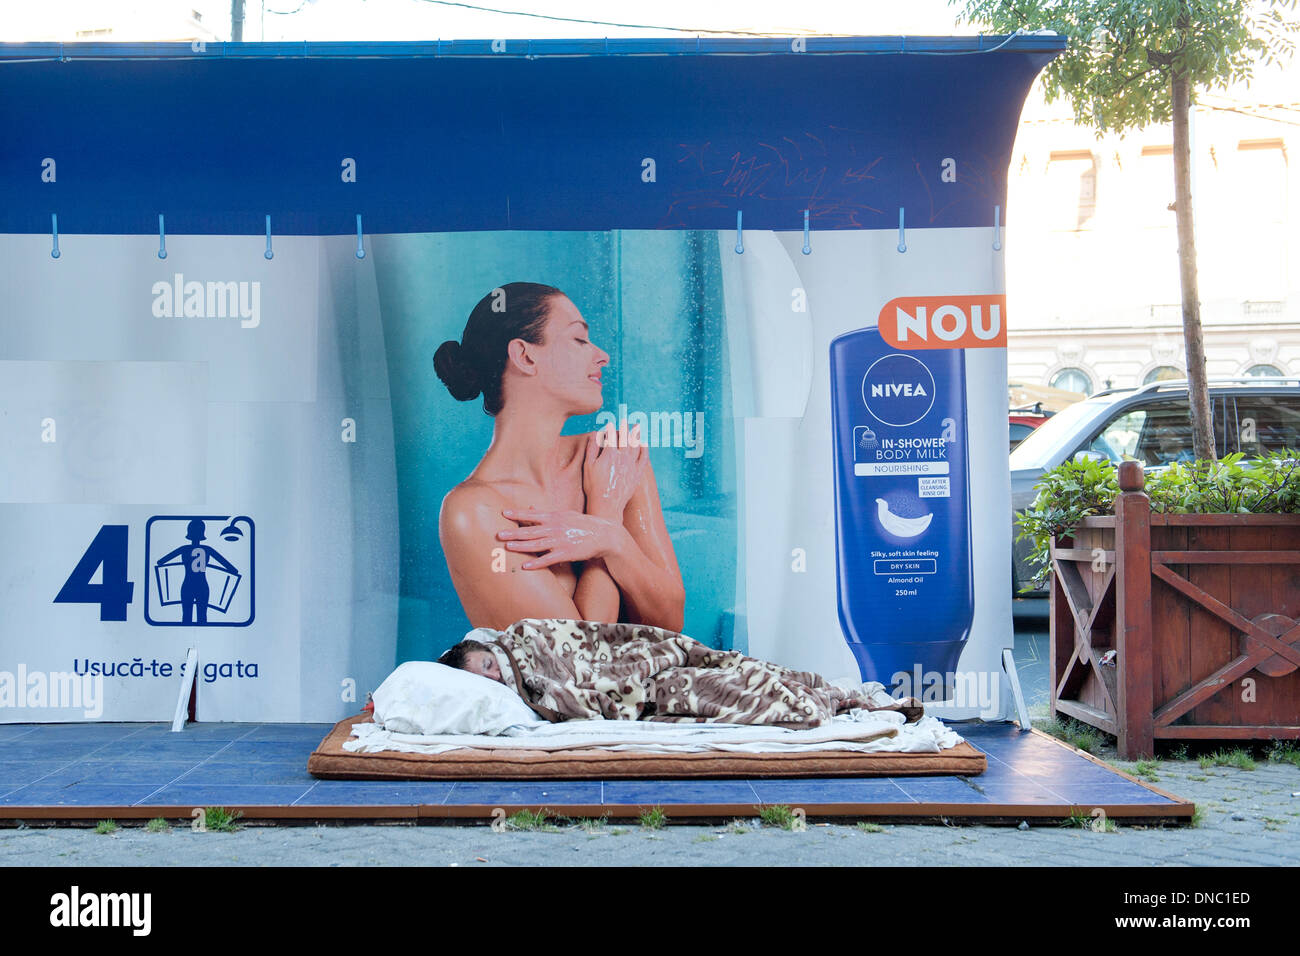 Homeless person sleeping in front of an advert for Nivea in Bucharest, the capital of Romania. - Stock Image